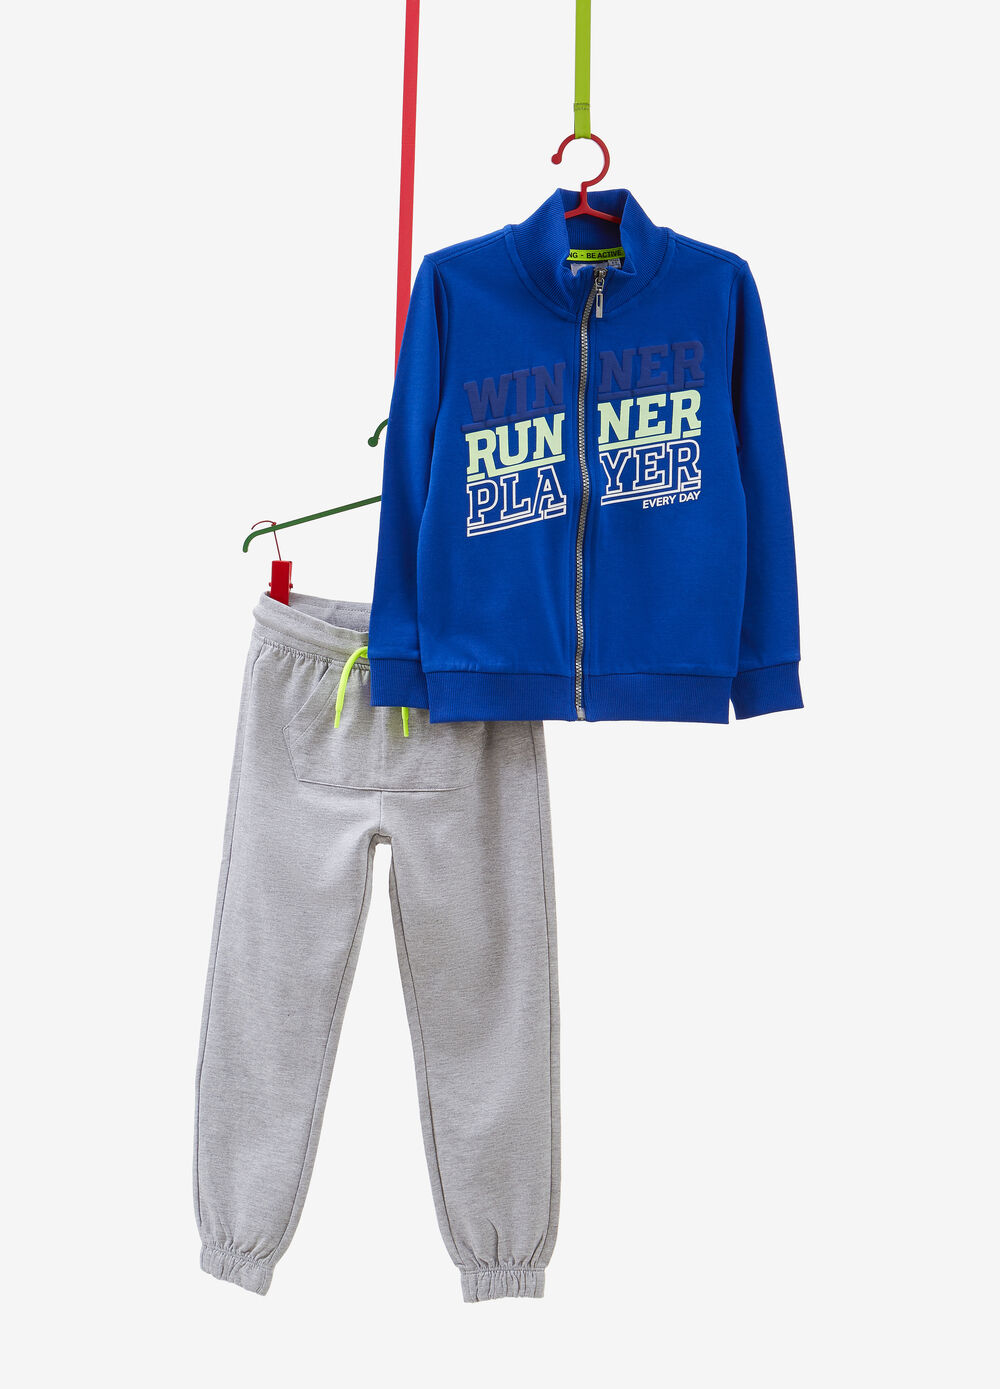 100% cotton tracksuit with sweatshirt and trousers